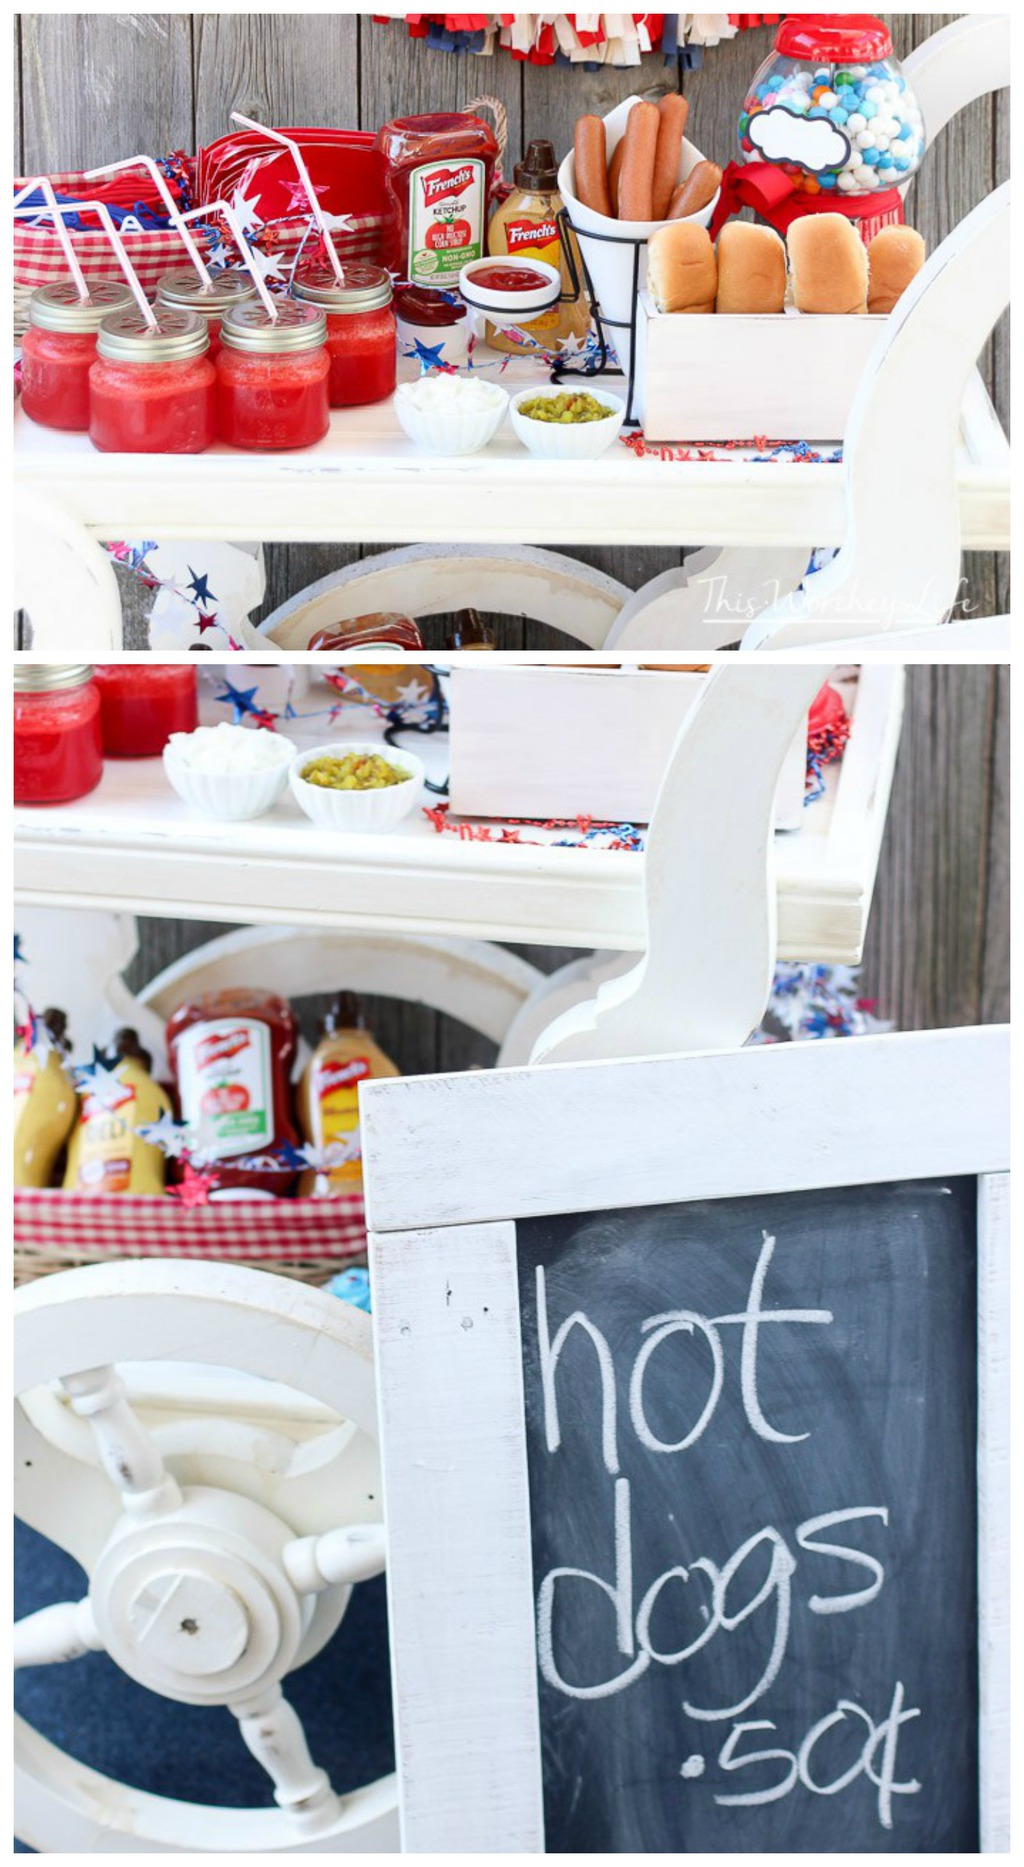 Get creative for your 4th of July party by adding an Americana Hot Dog Stand. This hot dog cart idea can easily be used for birthday parties, weddings, or fun summer parties! Get the details on the blog on how to create your own DIY Hot Dog Stand.